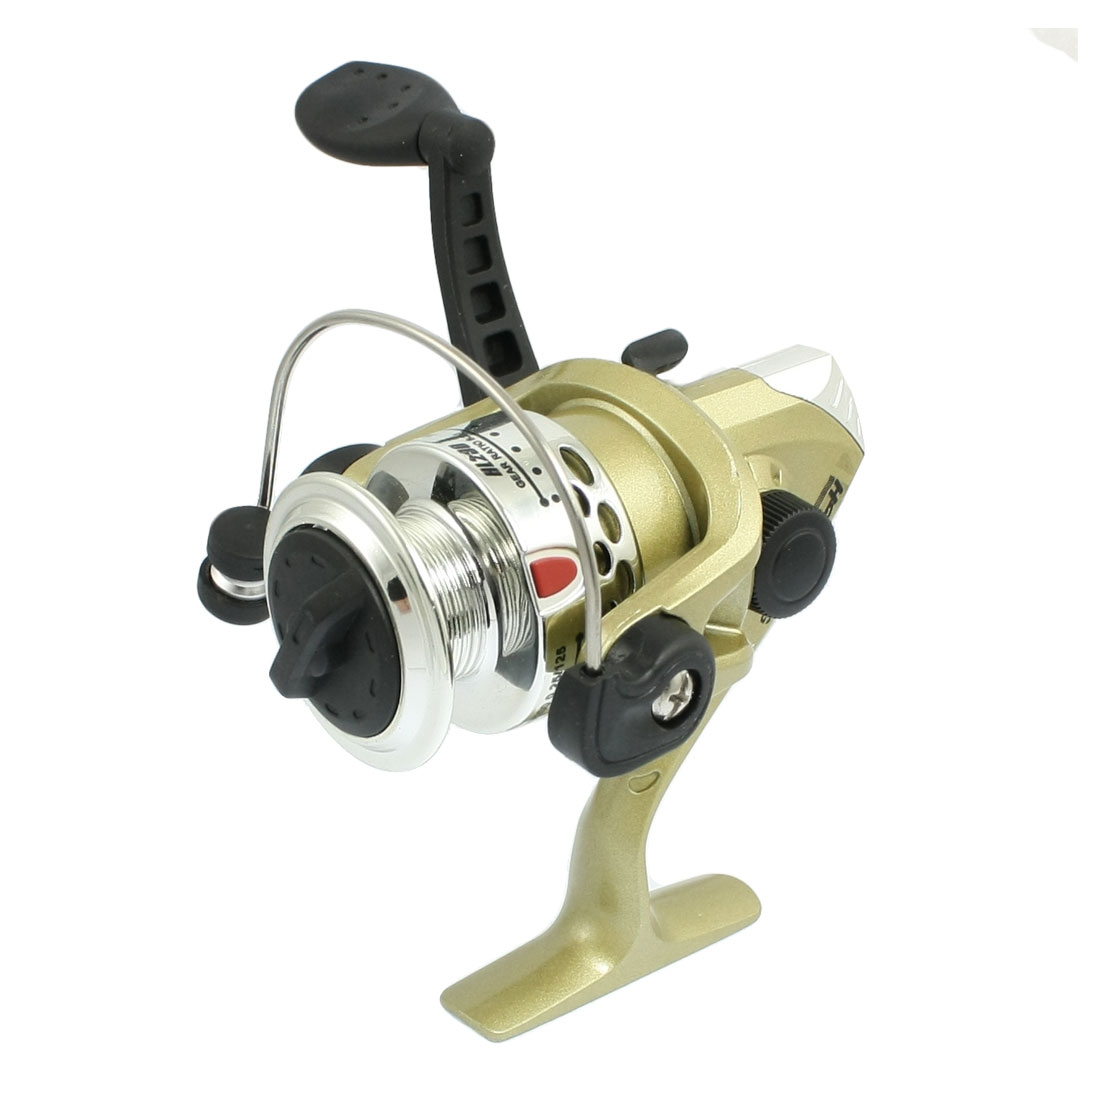 Silver Tone Black Bronze Tone 5.2:1 Gear Ratio Fishing Spinning Reel